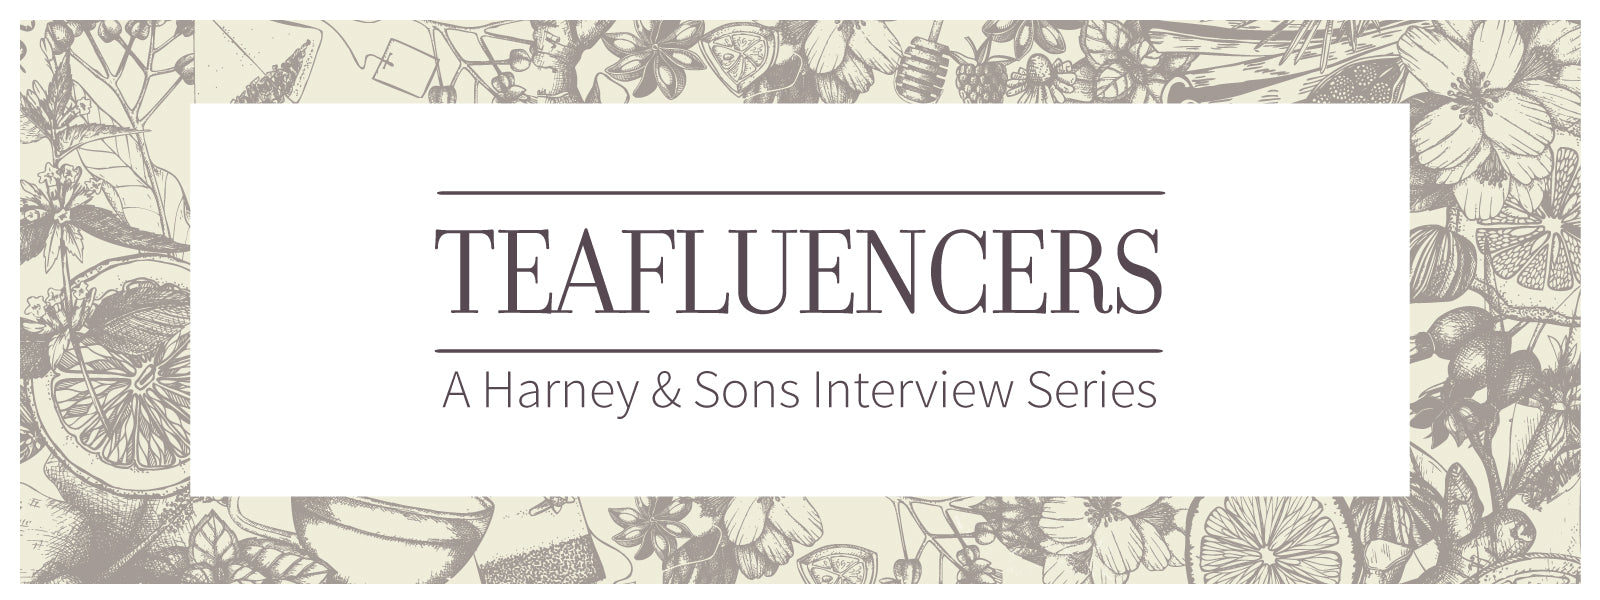 William Li Harney & Sons